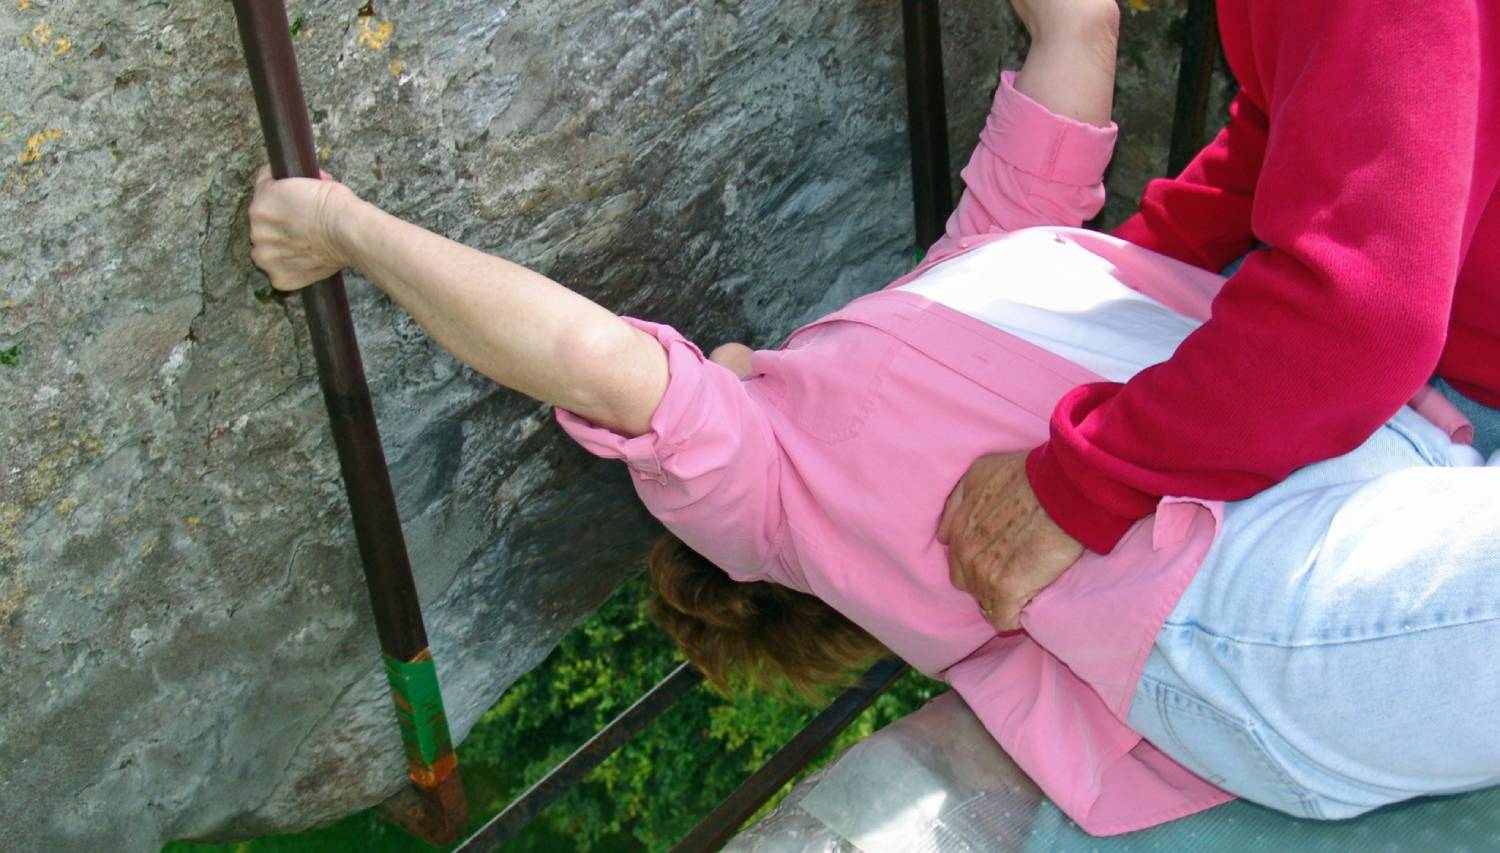 Blarney Stone - Things To Do In Ireland